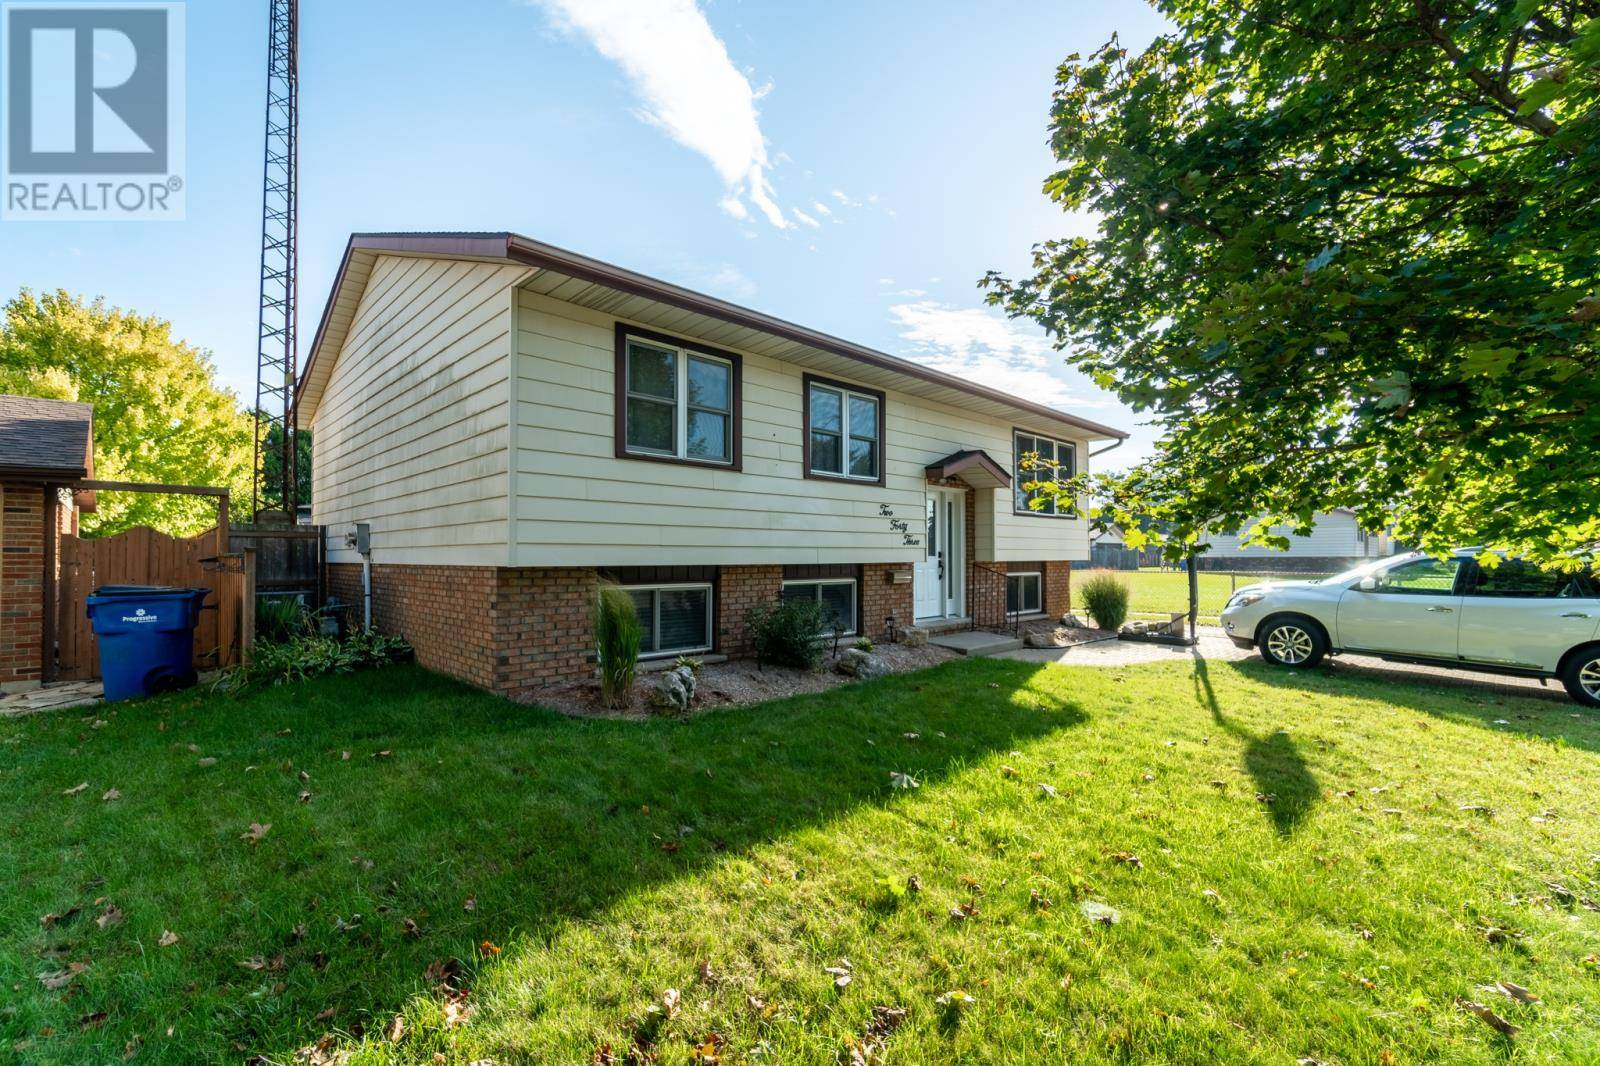 House for sale at 243 Michener Rd Chatham Ontario - MLS: 19026550